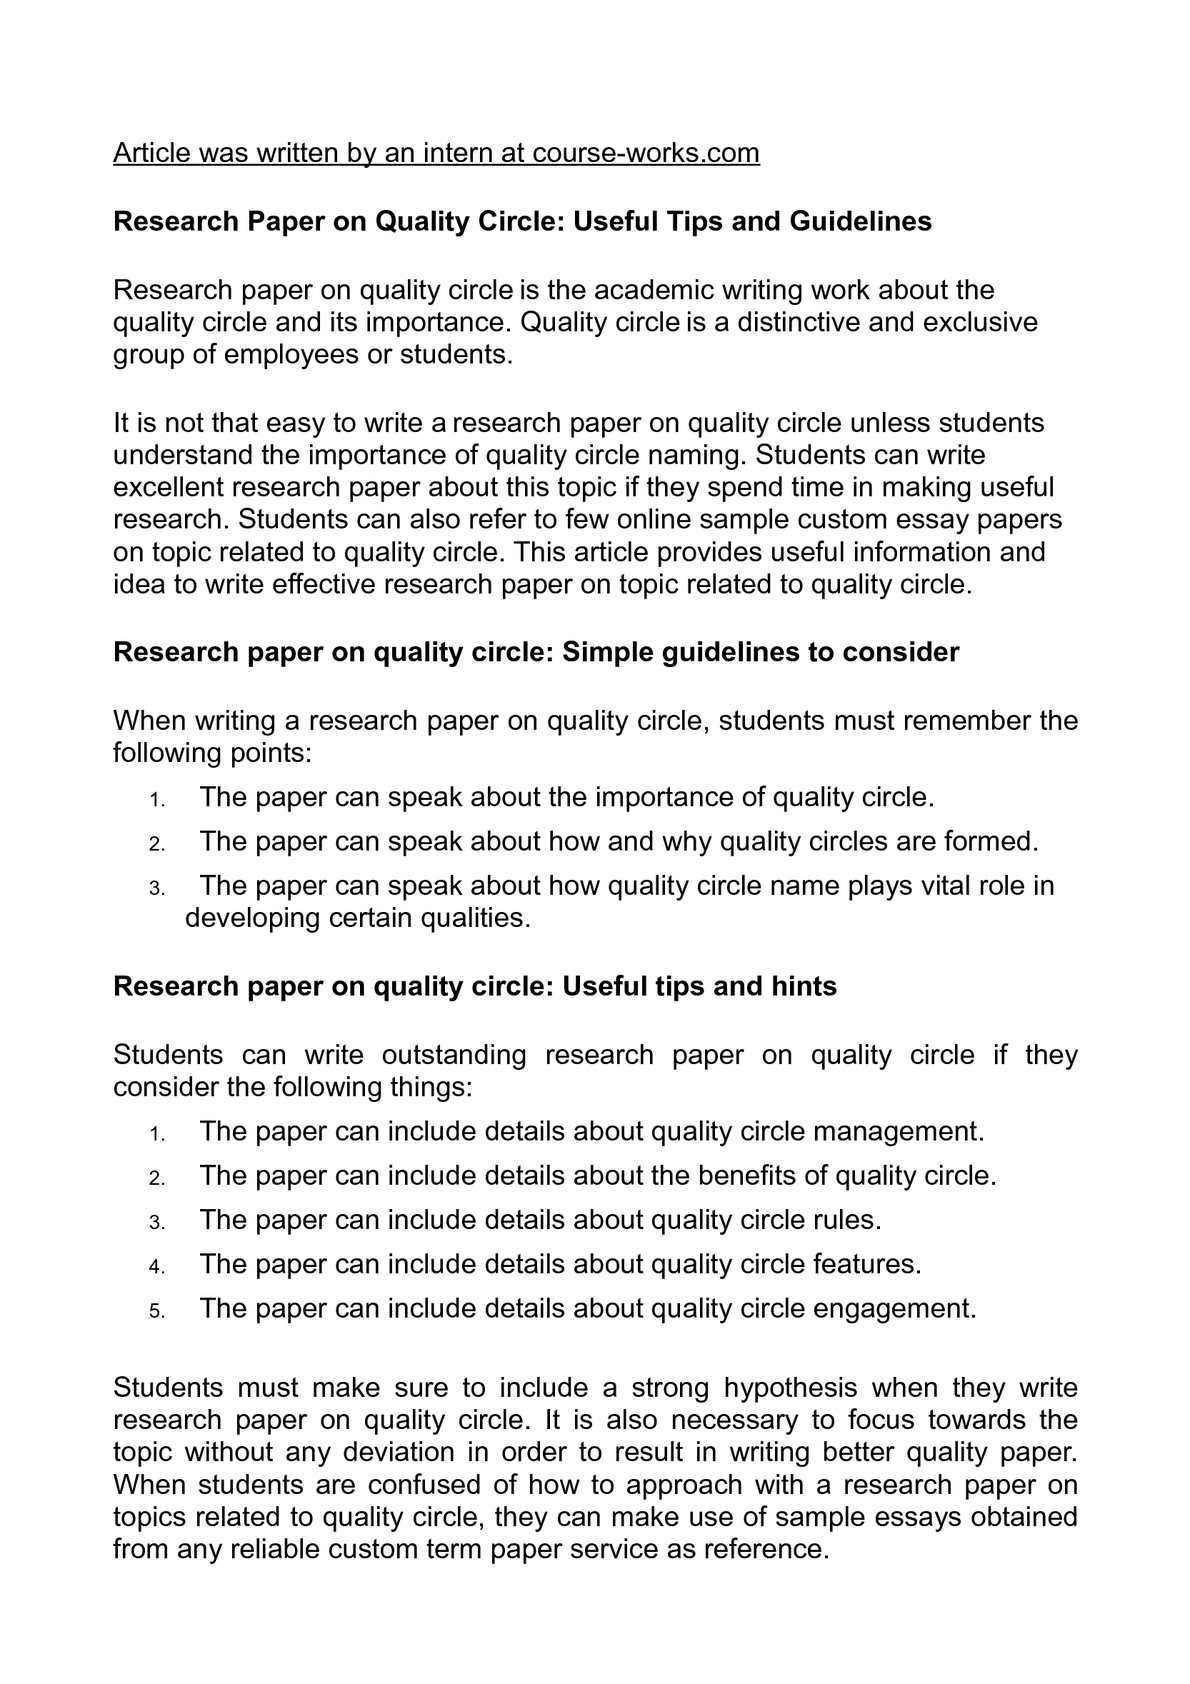 008 Research Paper P1 Topics To Writebout In Shocking Write About A Health On Full